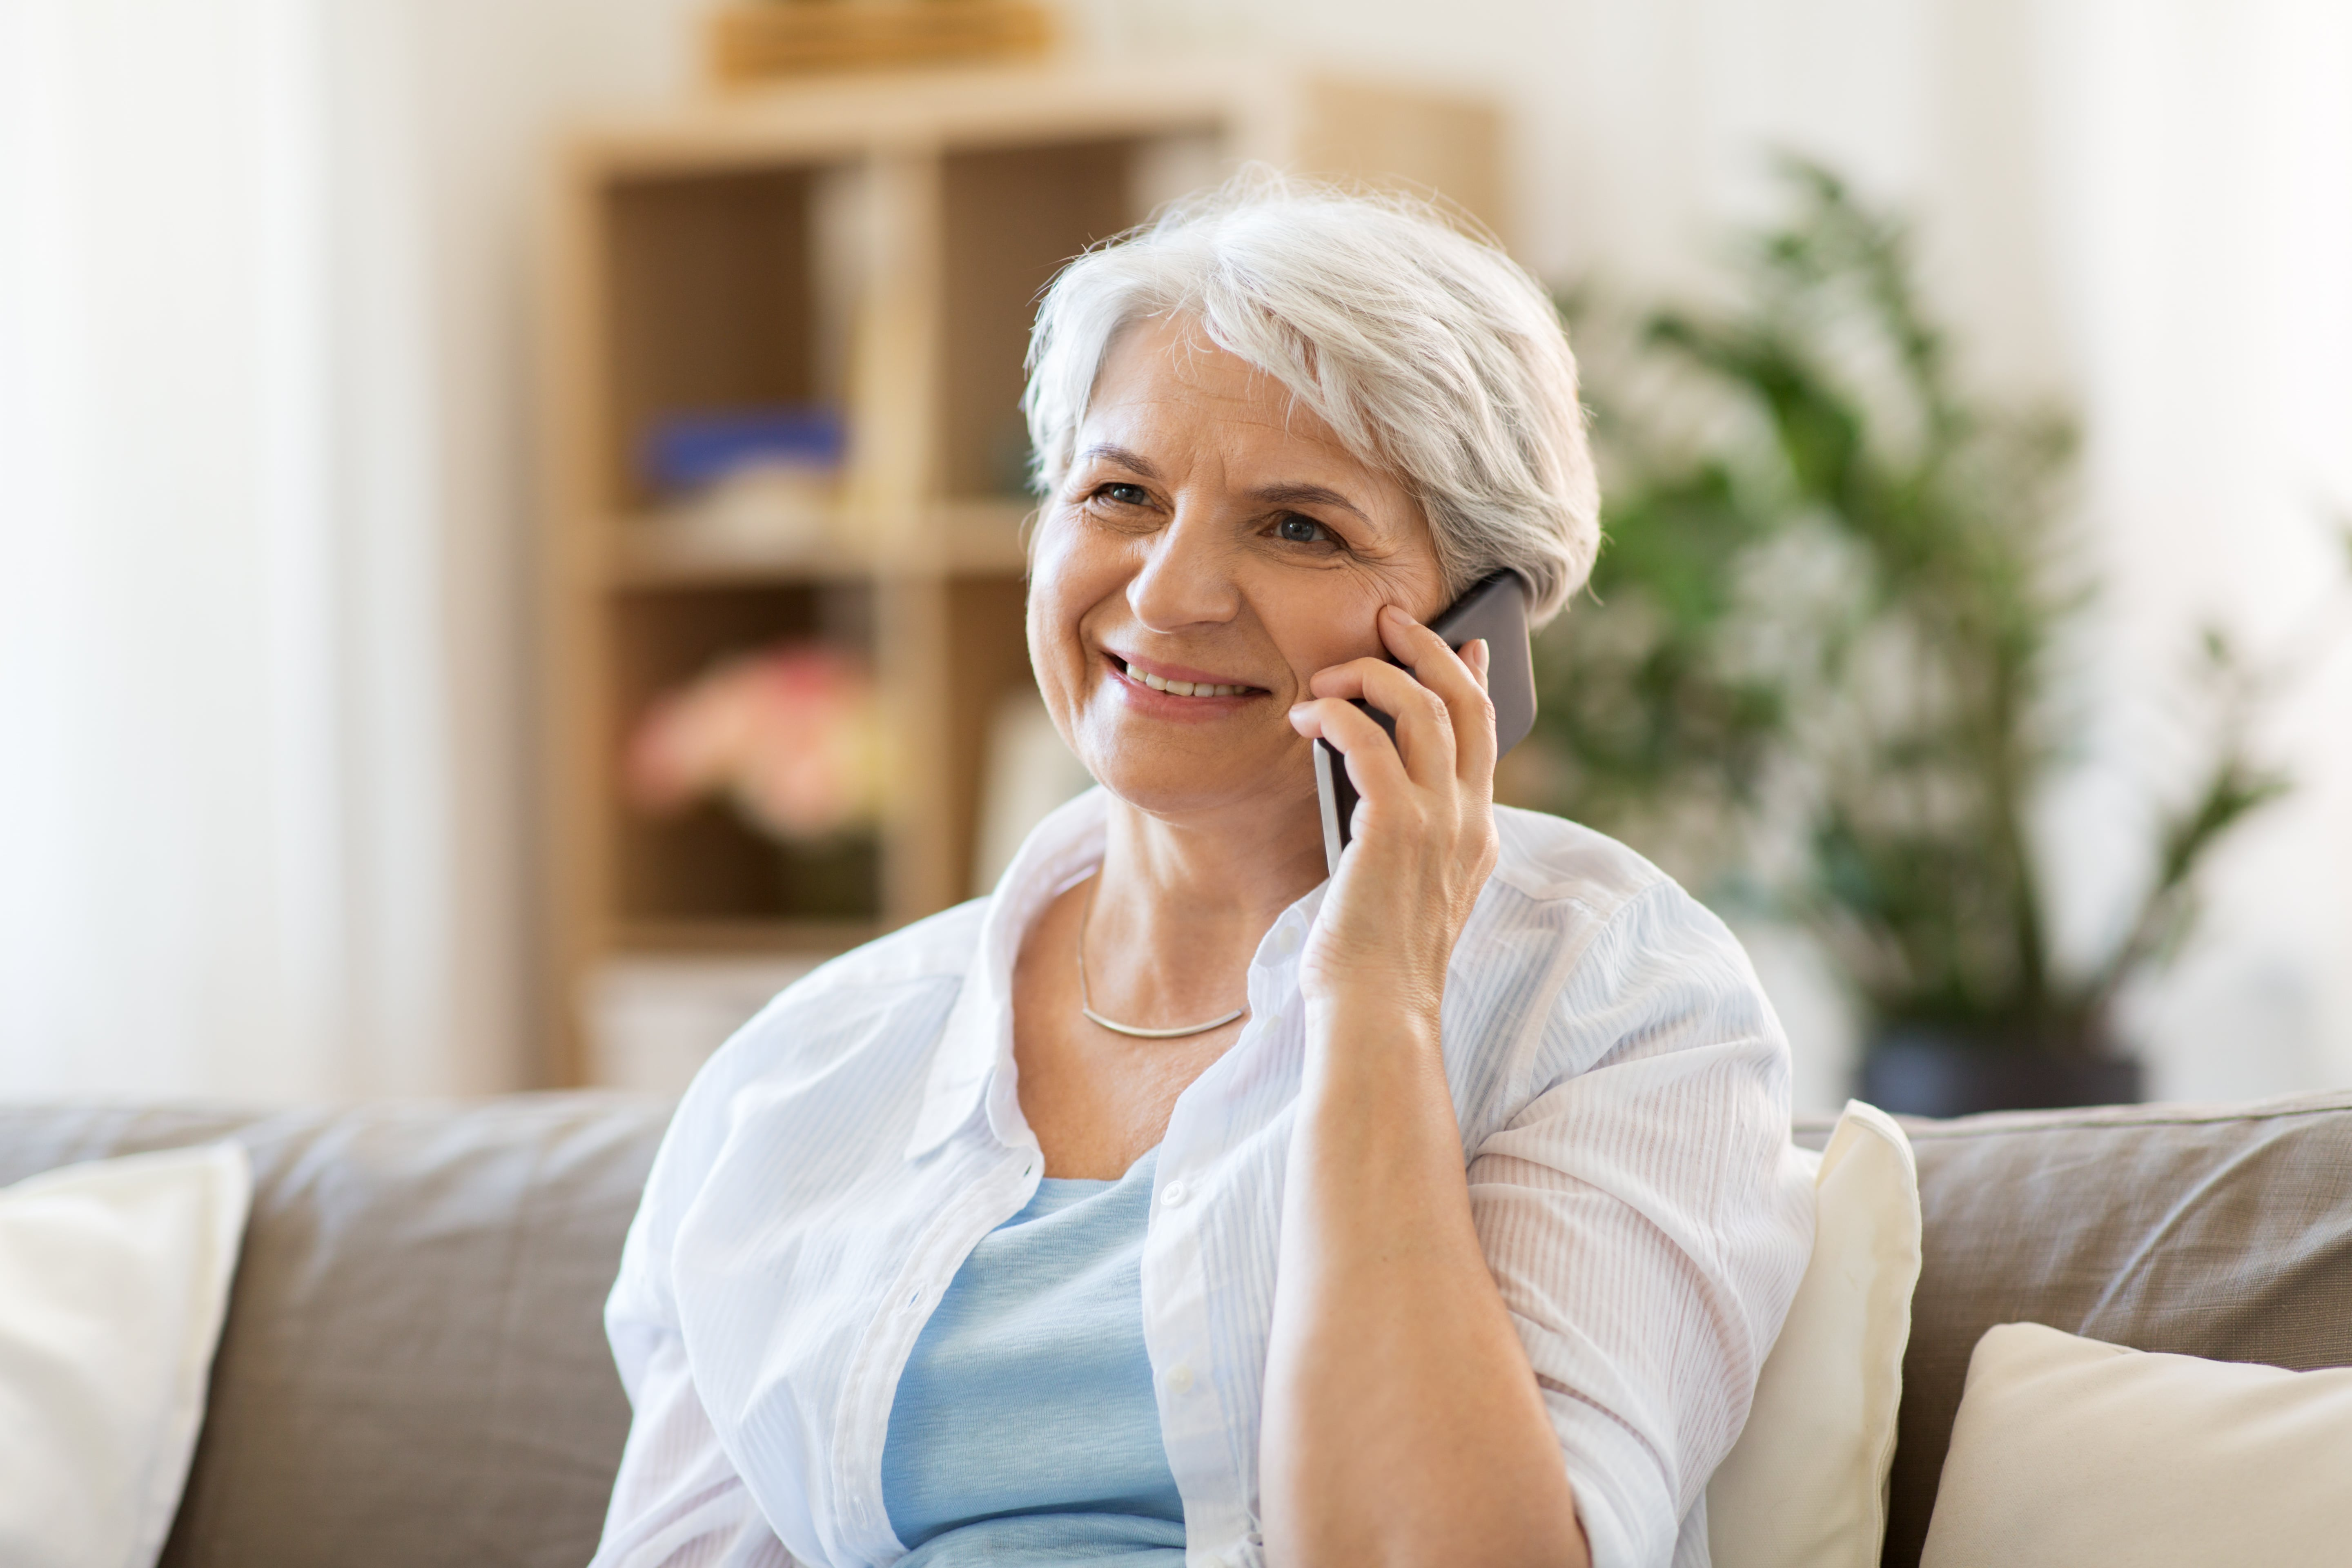 Success Tips for Phone Calls With a Loved One Who Has Dementia